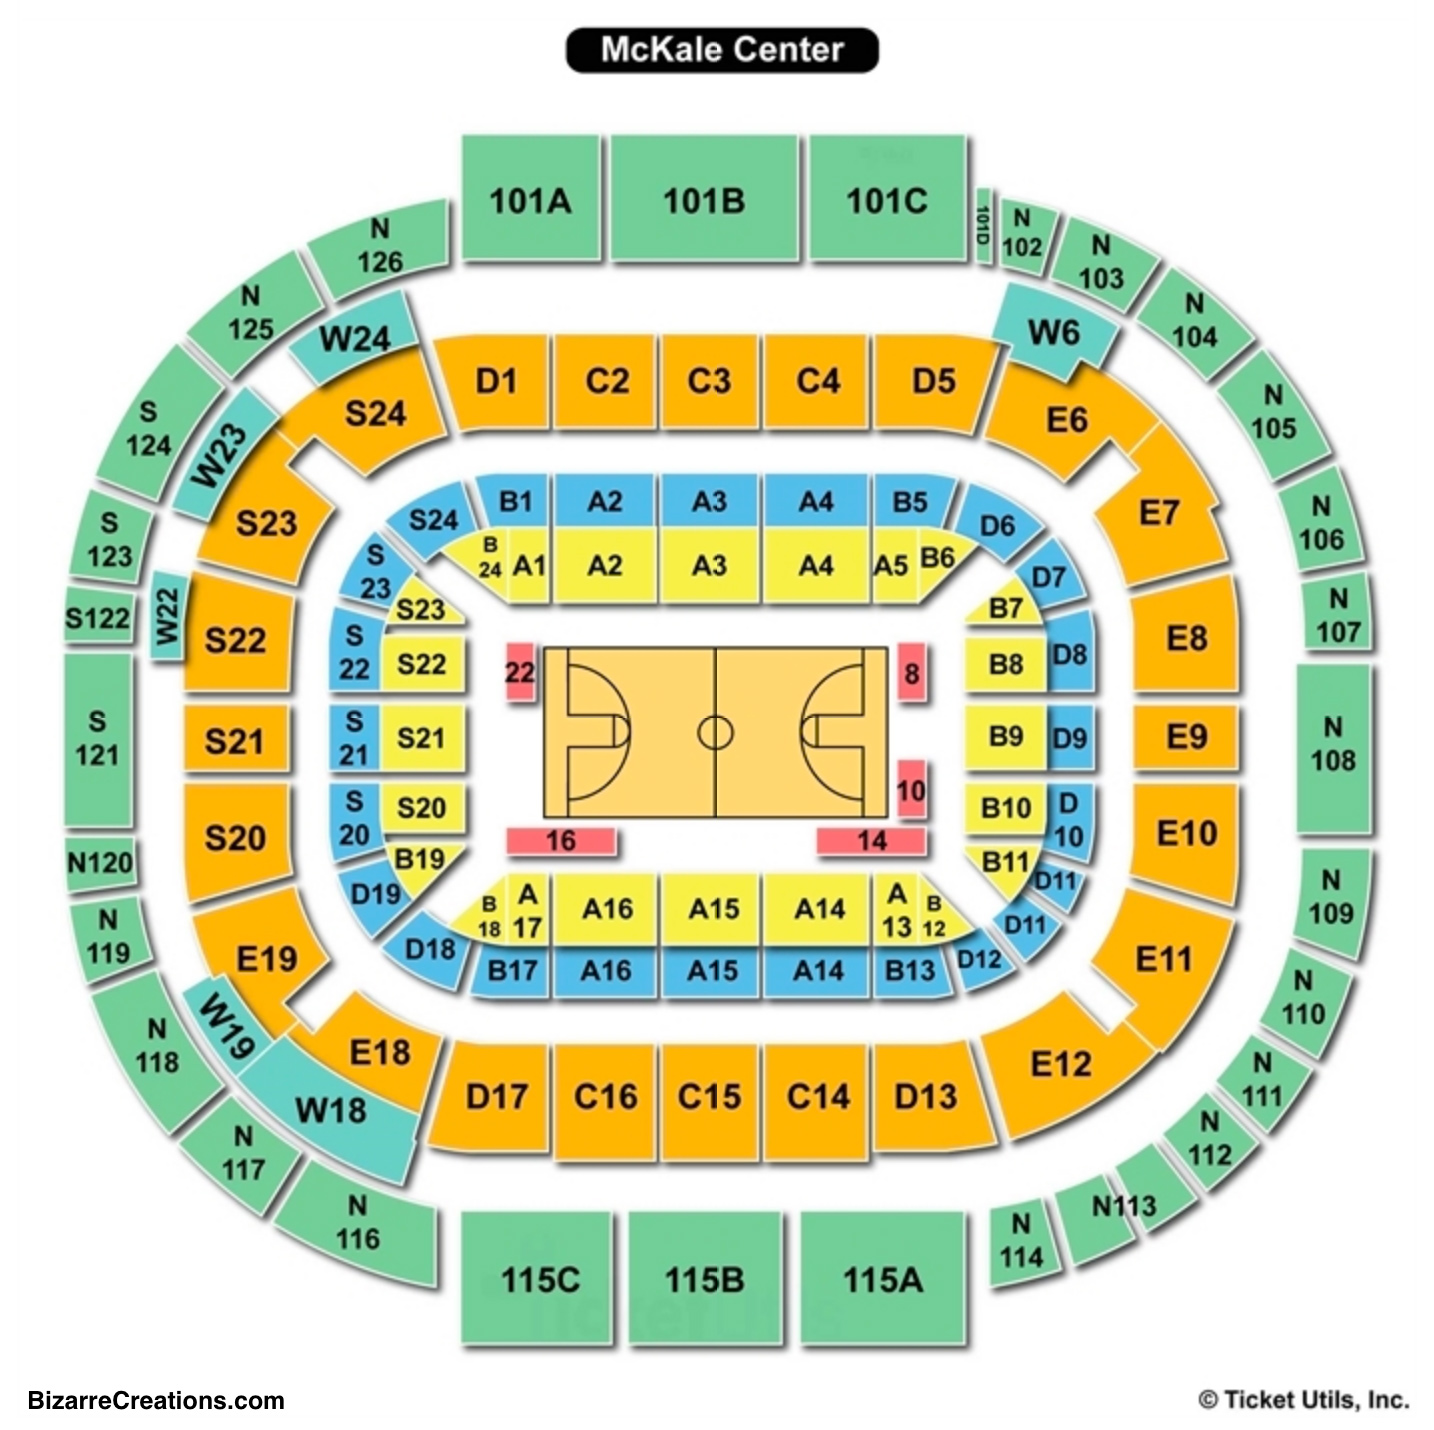 Mckale Center Seating Charts Views